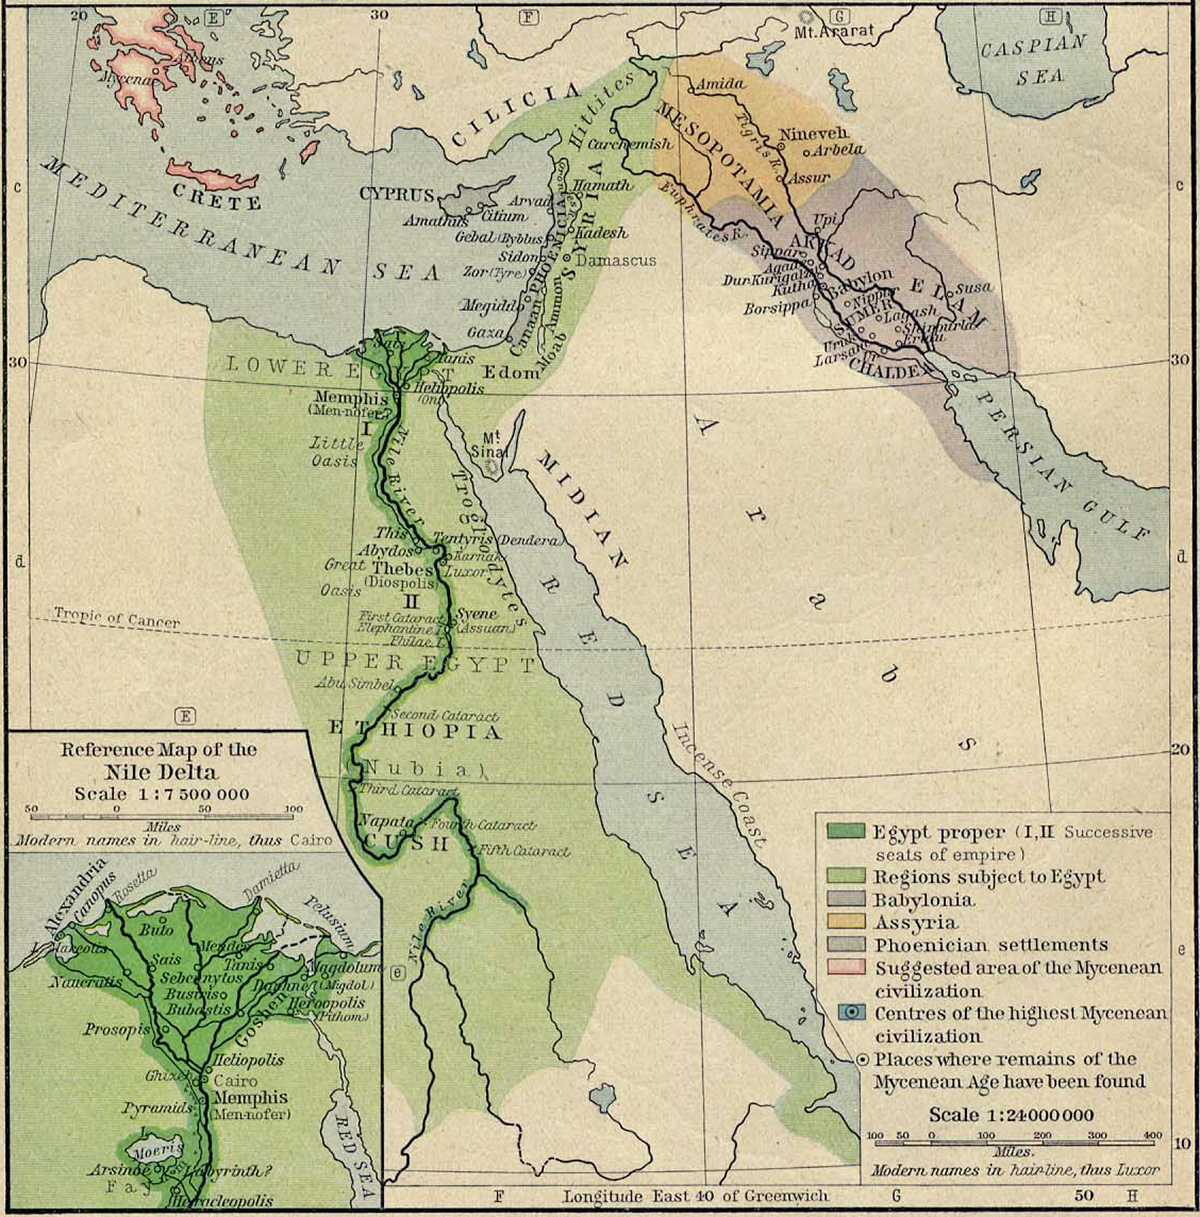 Map of egypt syria and mesopotamia 1450 bc map of ancient egypt ancient syria and ancient mesopotamia about 1450 bc gumiabroncs Images